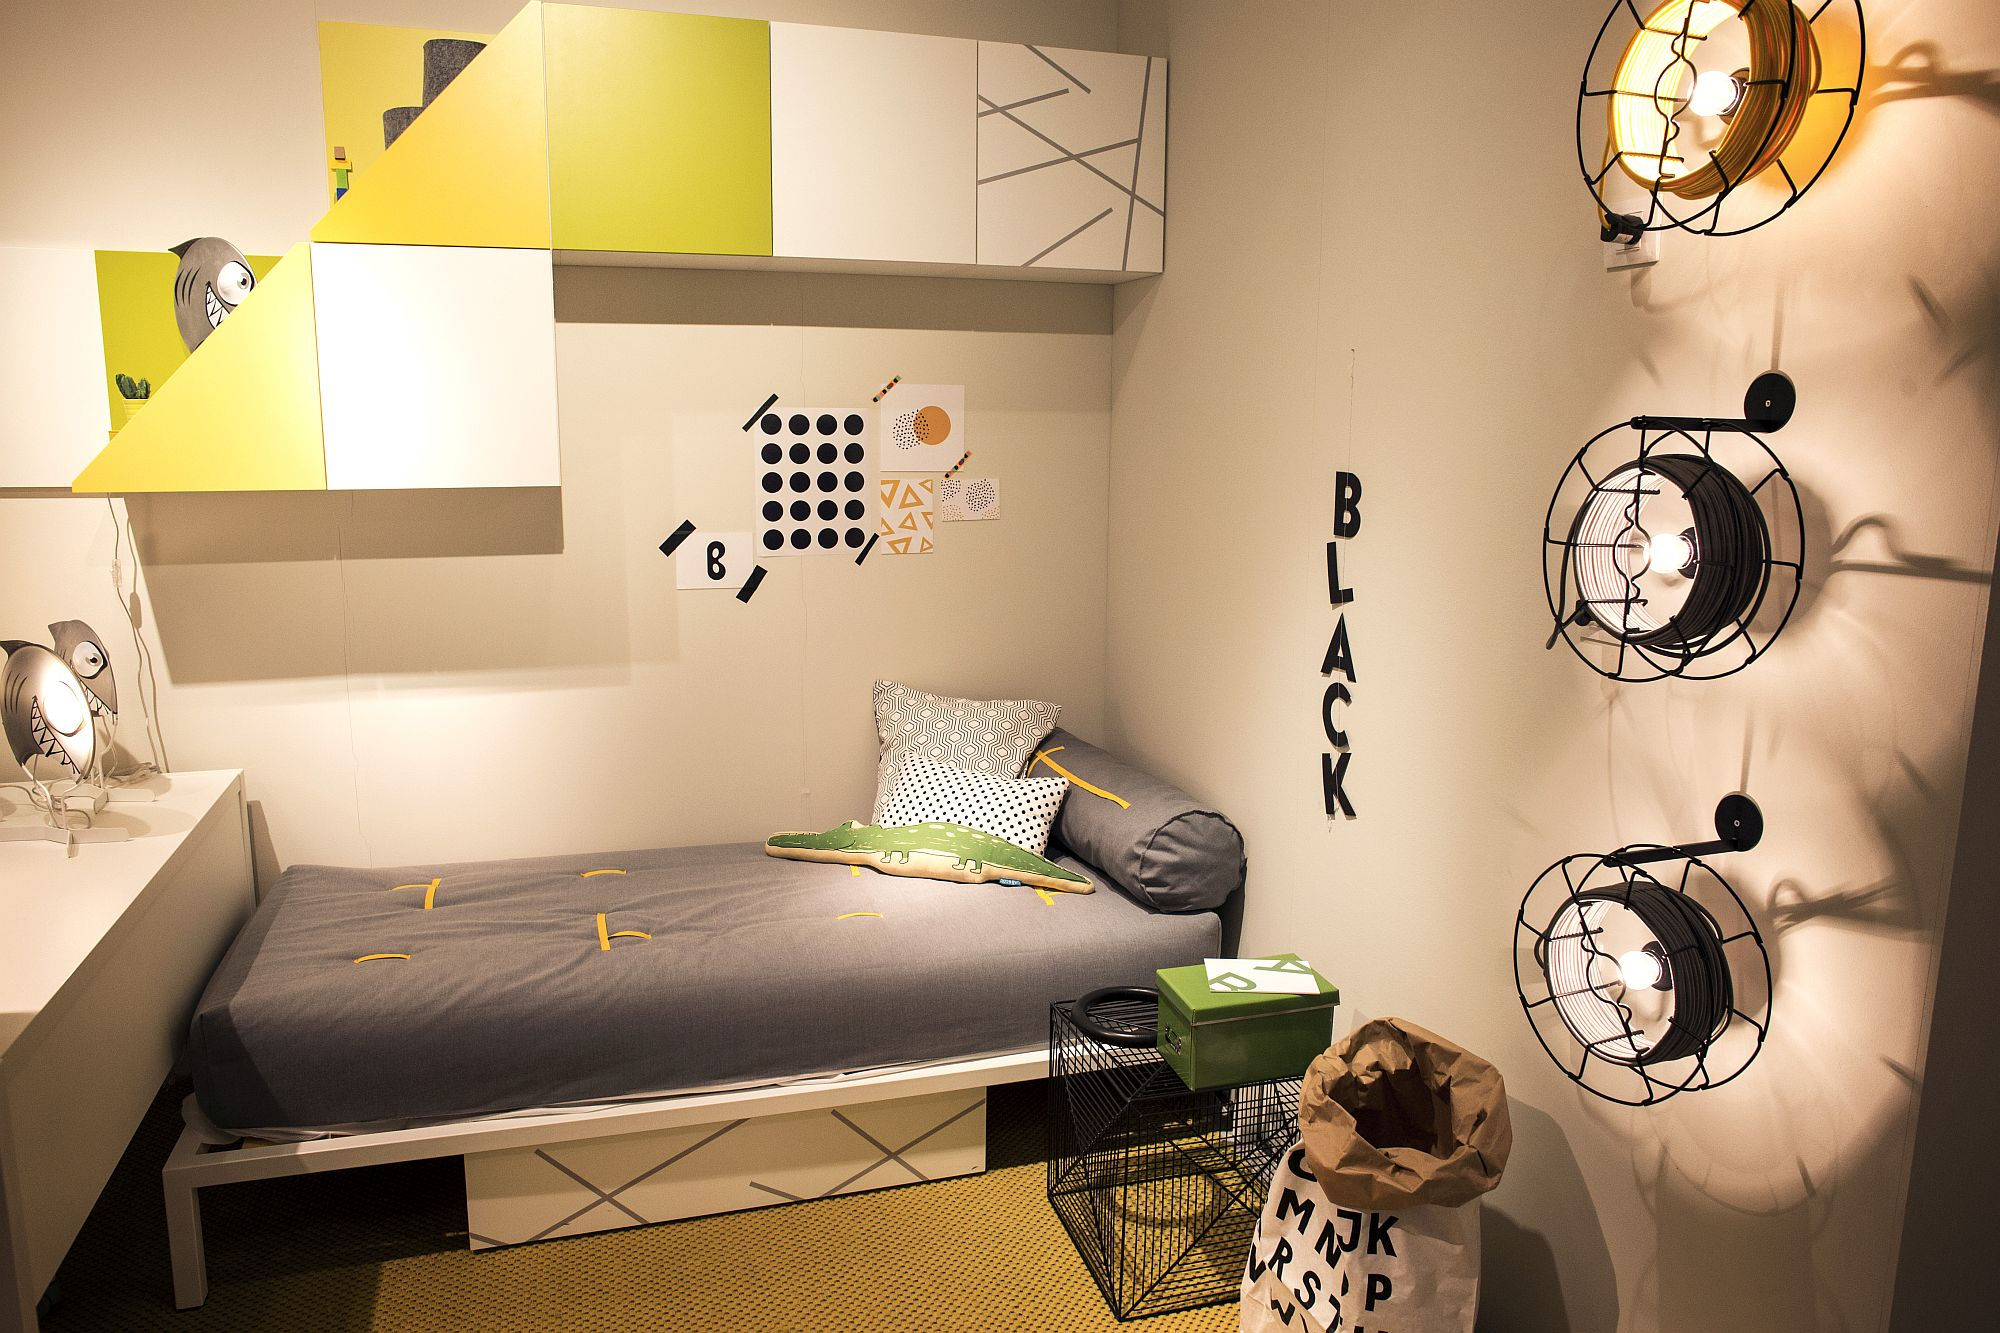 Innovative lighting coupled with space-savvy bed in the tiny kids' room